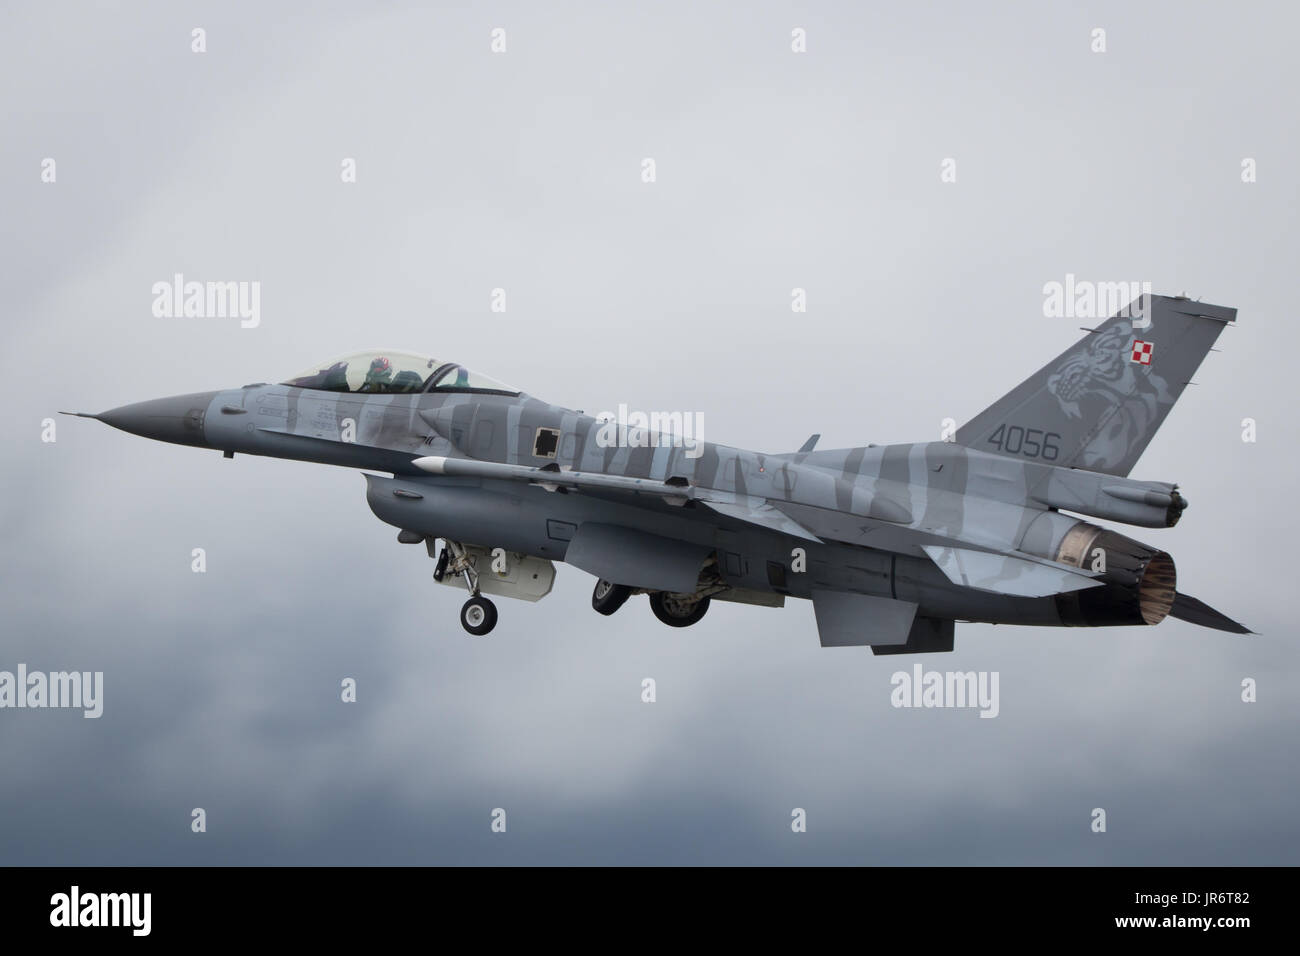 Fairford, Gloucestershire, UK - July 10th, 2016: Lockheed Martin General Dynamics F-16 Fighting Falcon Display - Stock Image